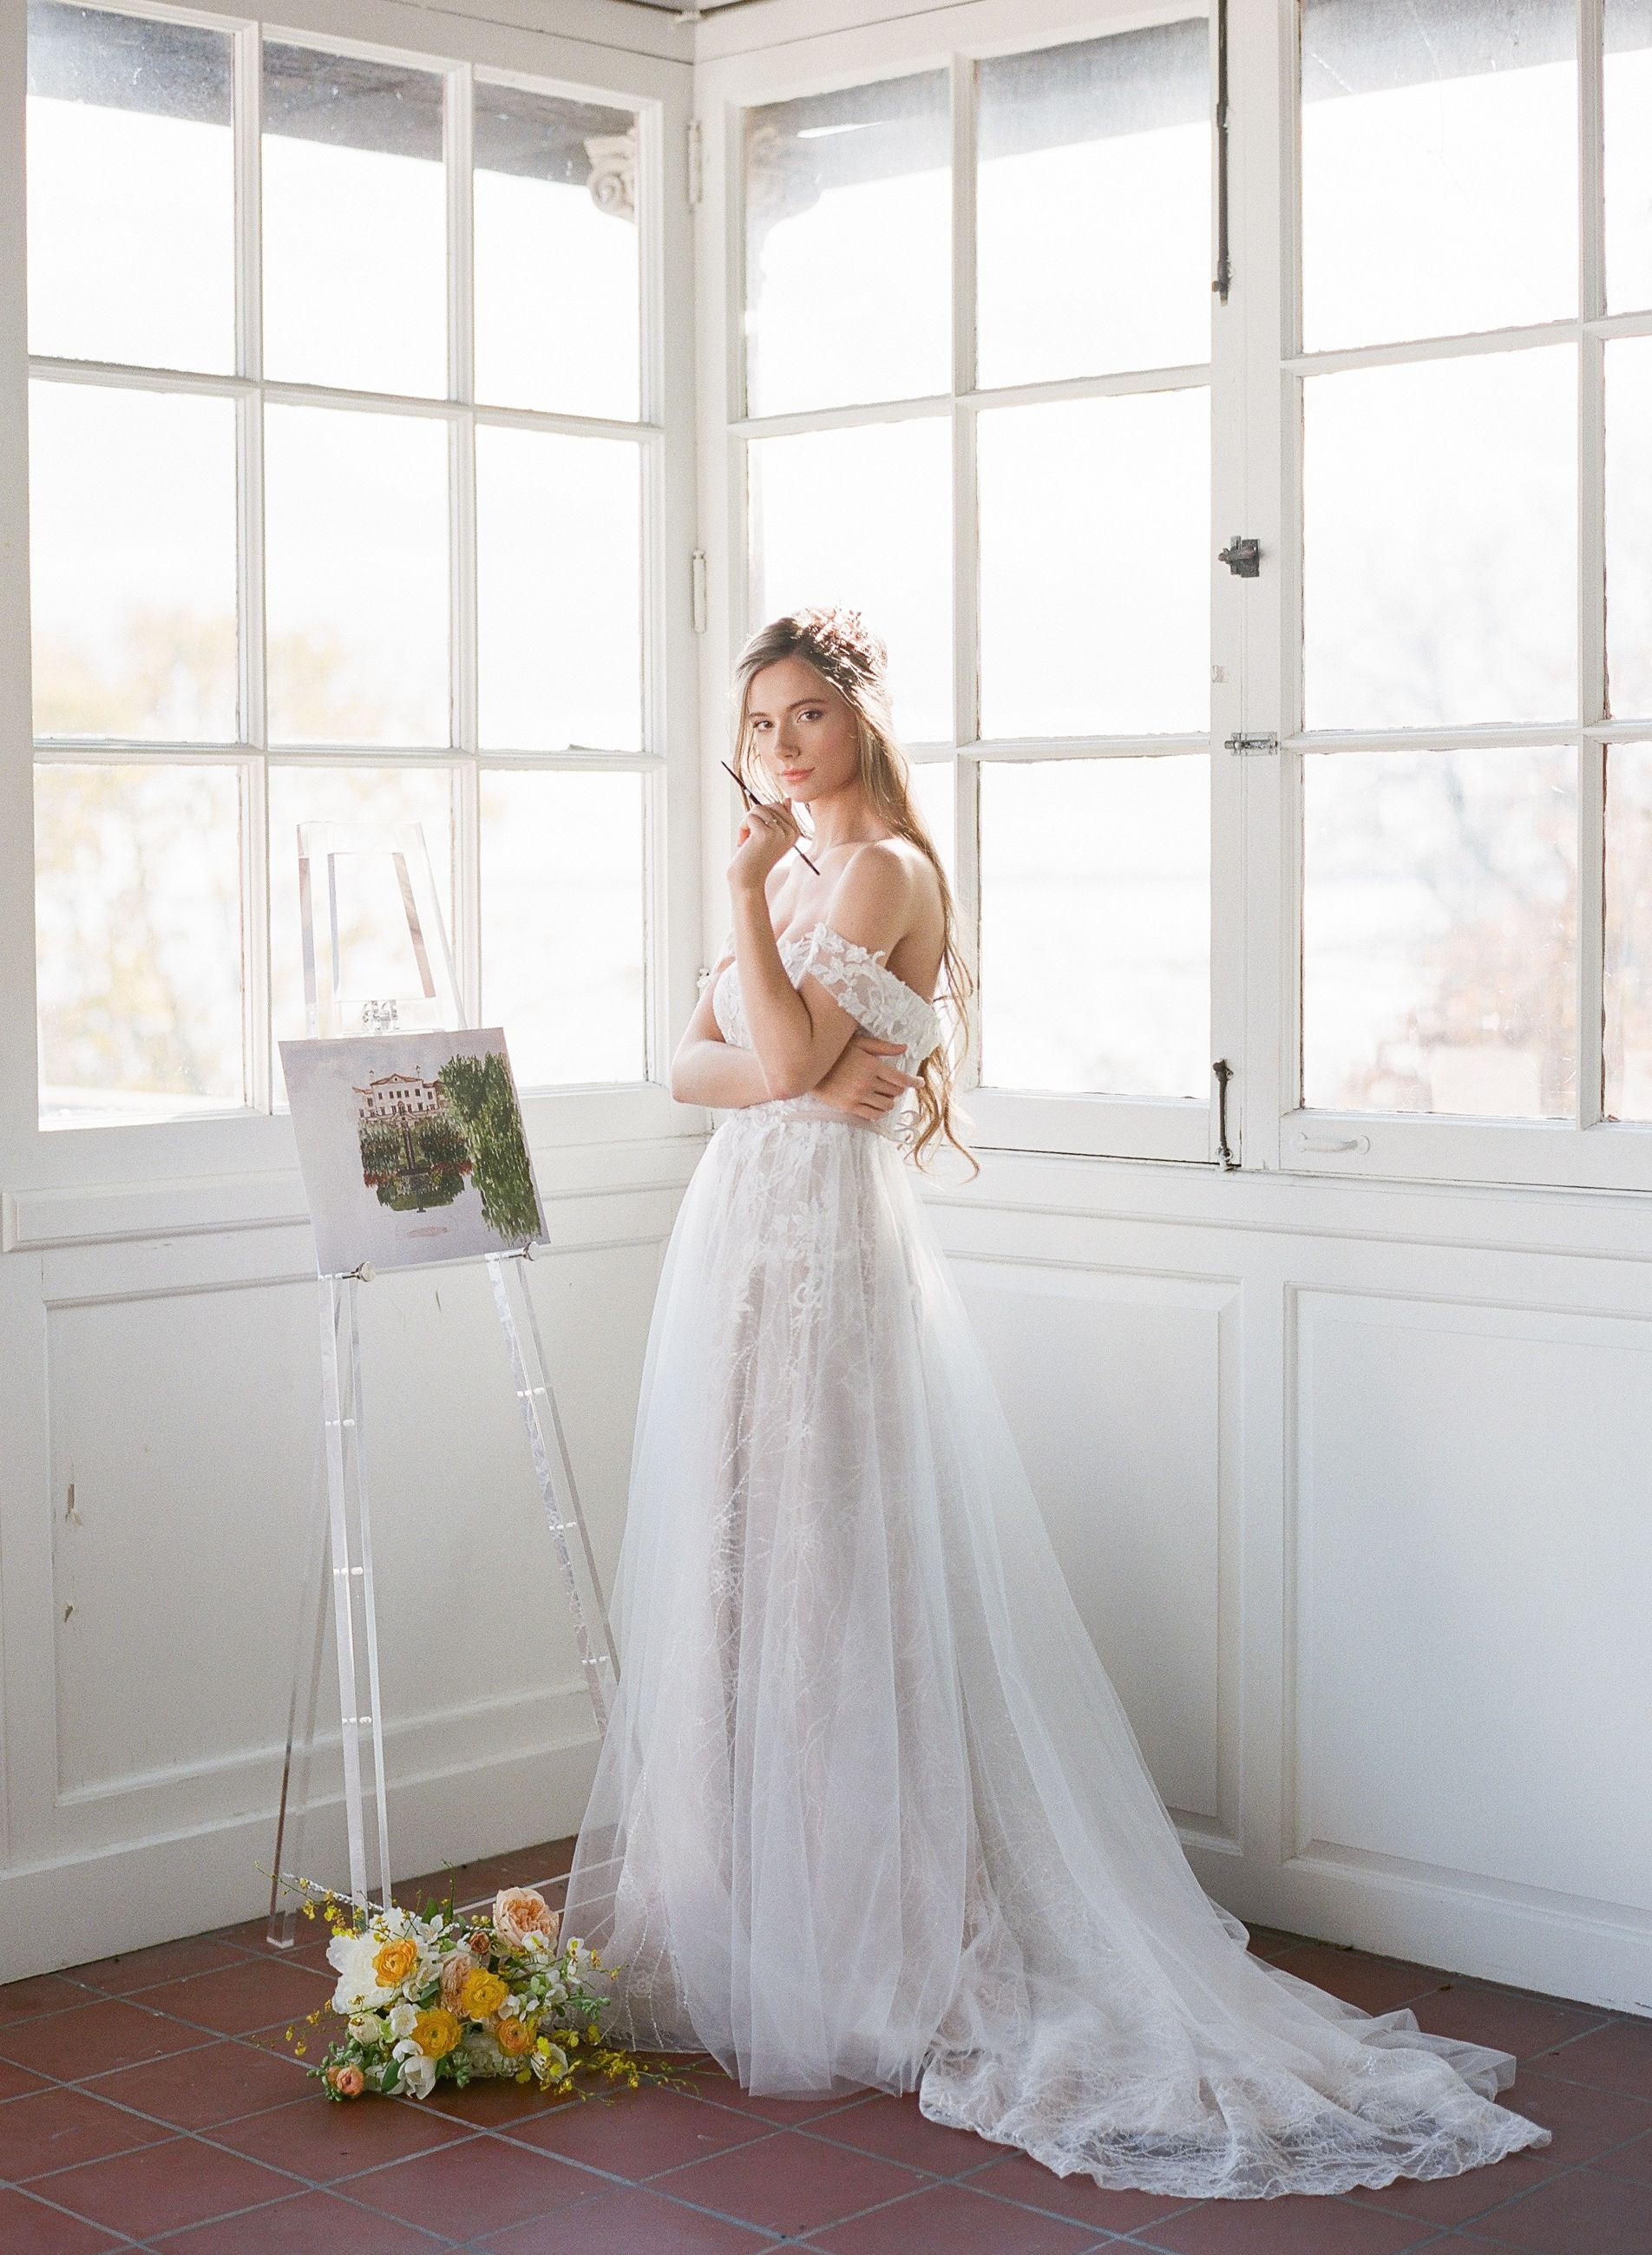 Pin On Styled Shoots